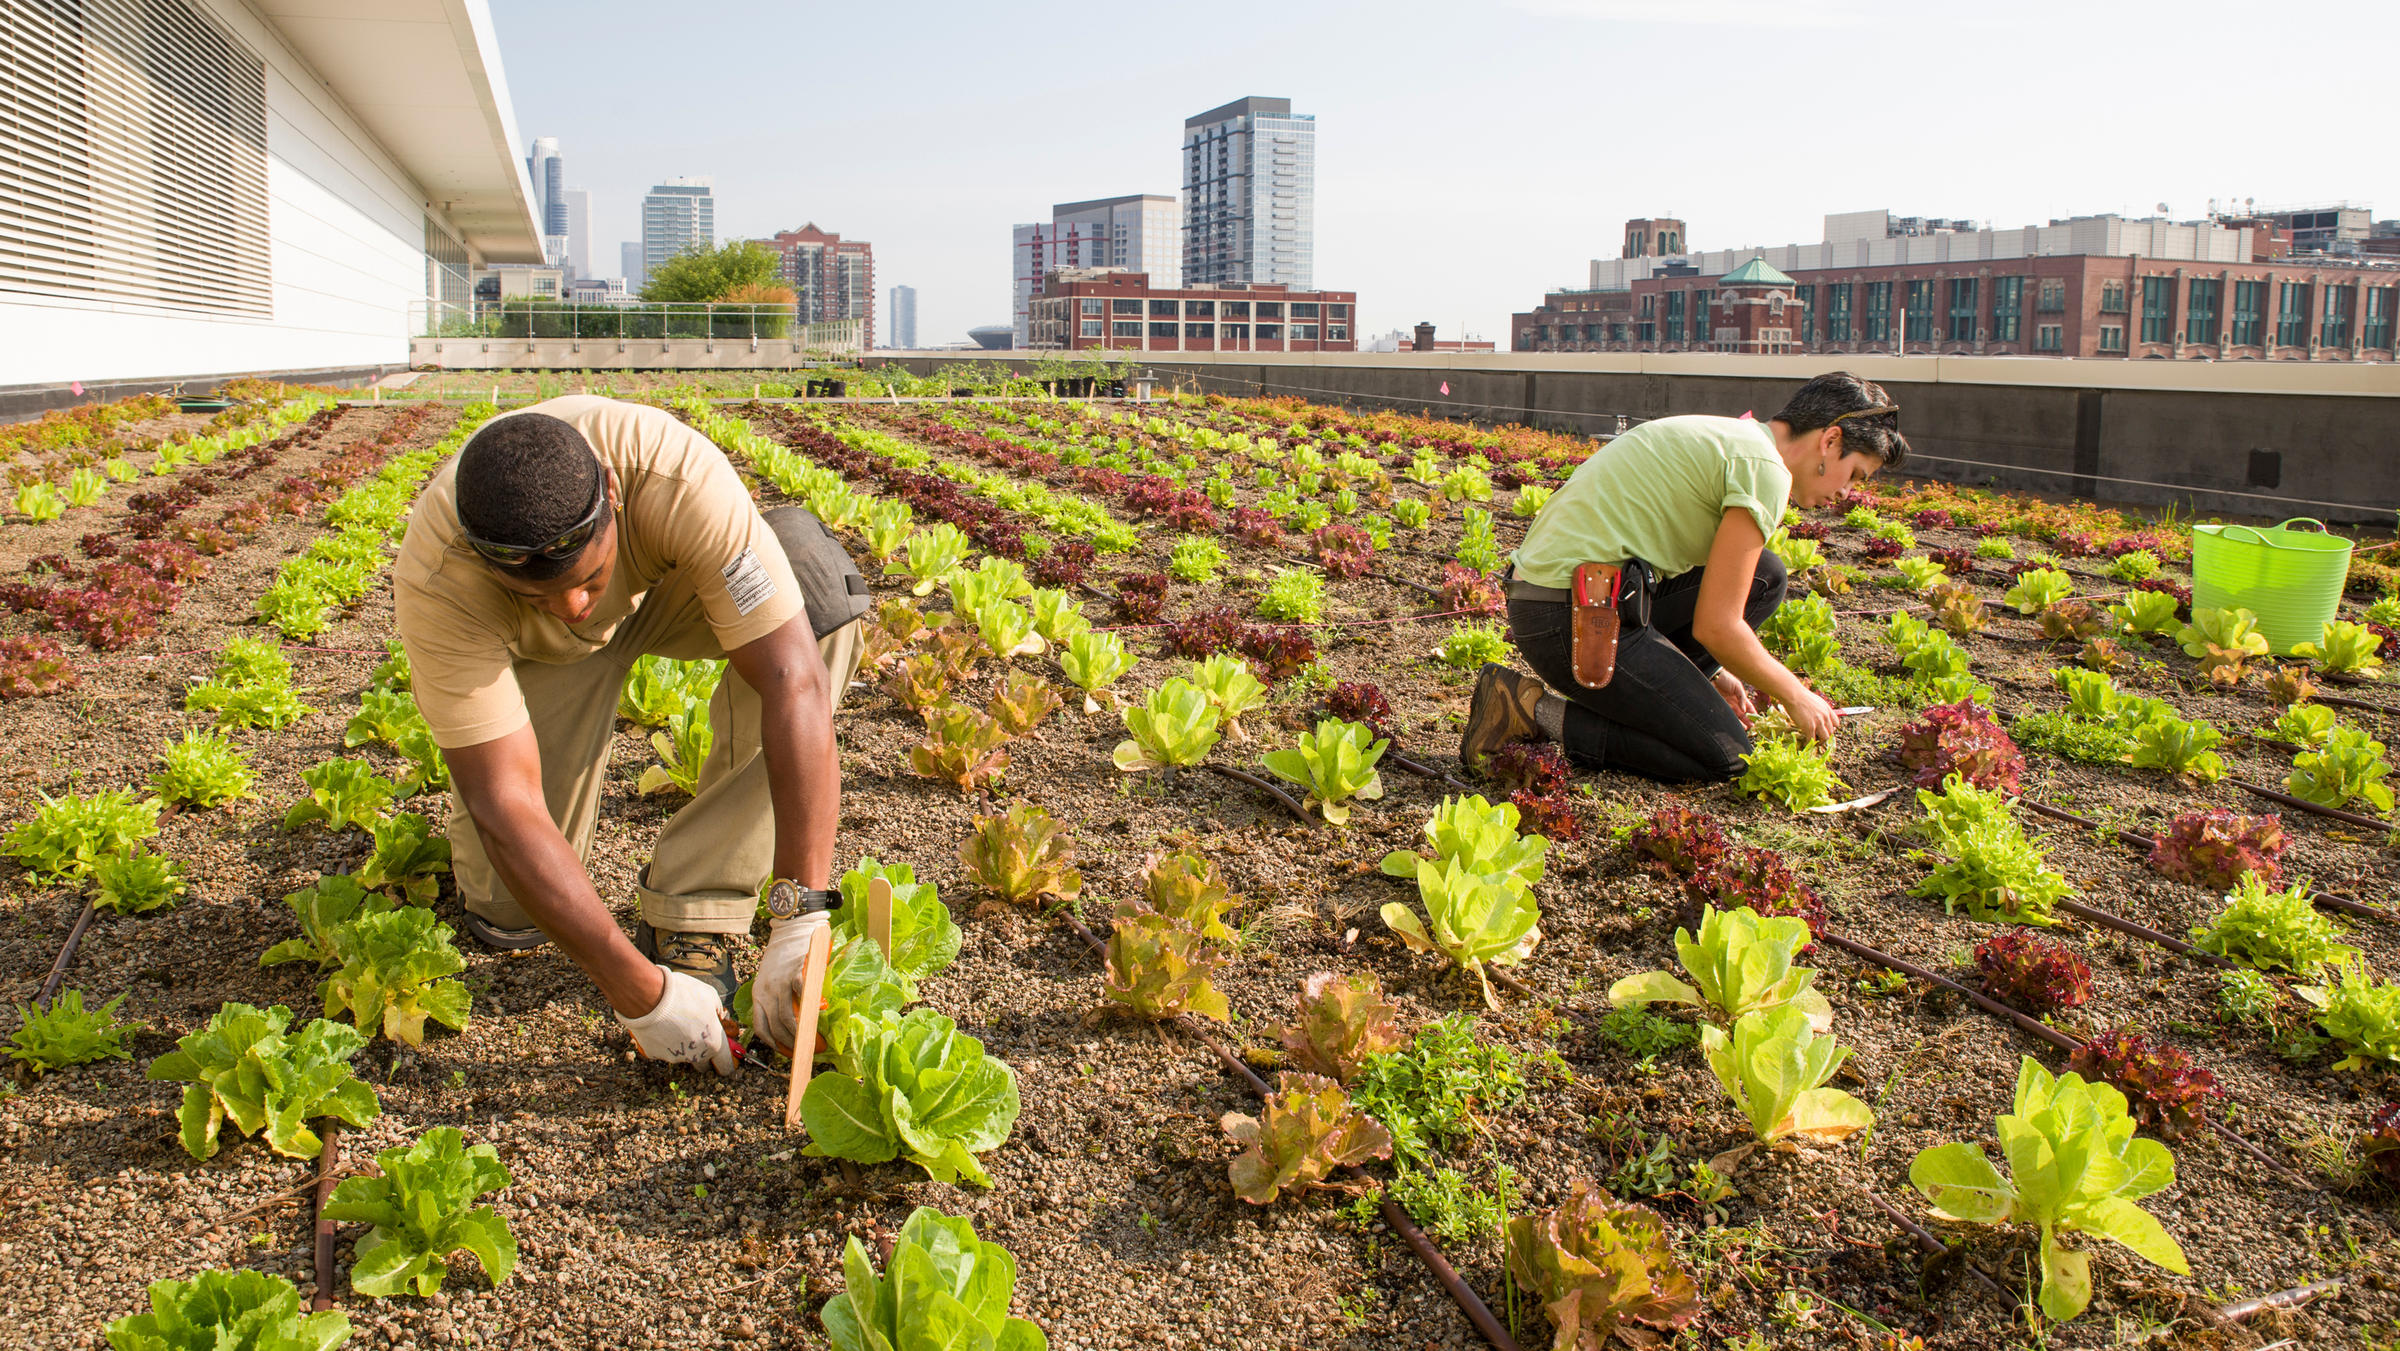 Rooftop Farming Is Getting Off The Ground | WLRN